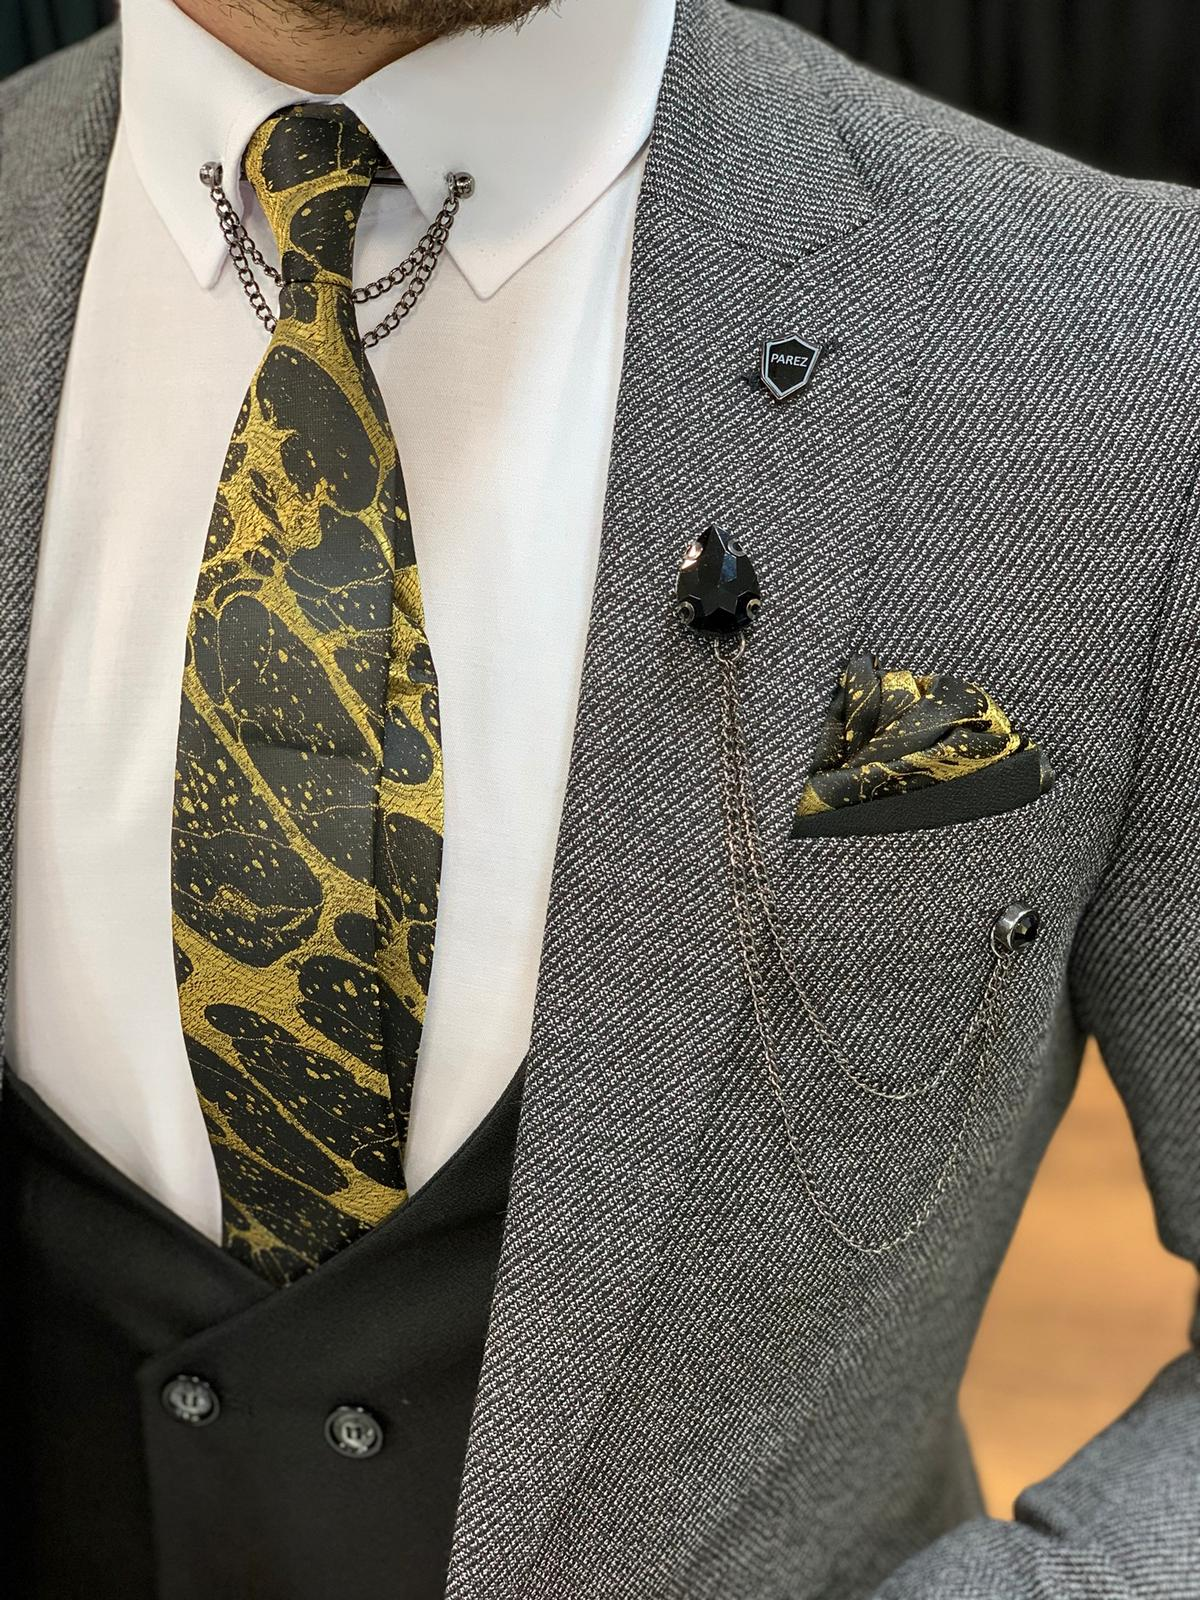 Pocket Squares Can Turn Your Boring Suit Into a Sartorial Stunner by GentWith Blog